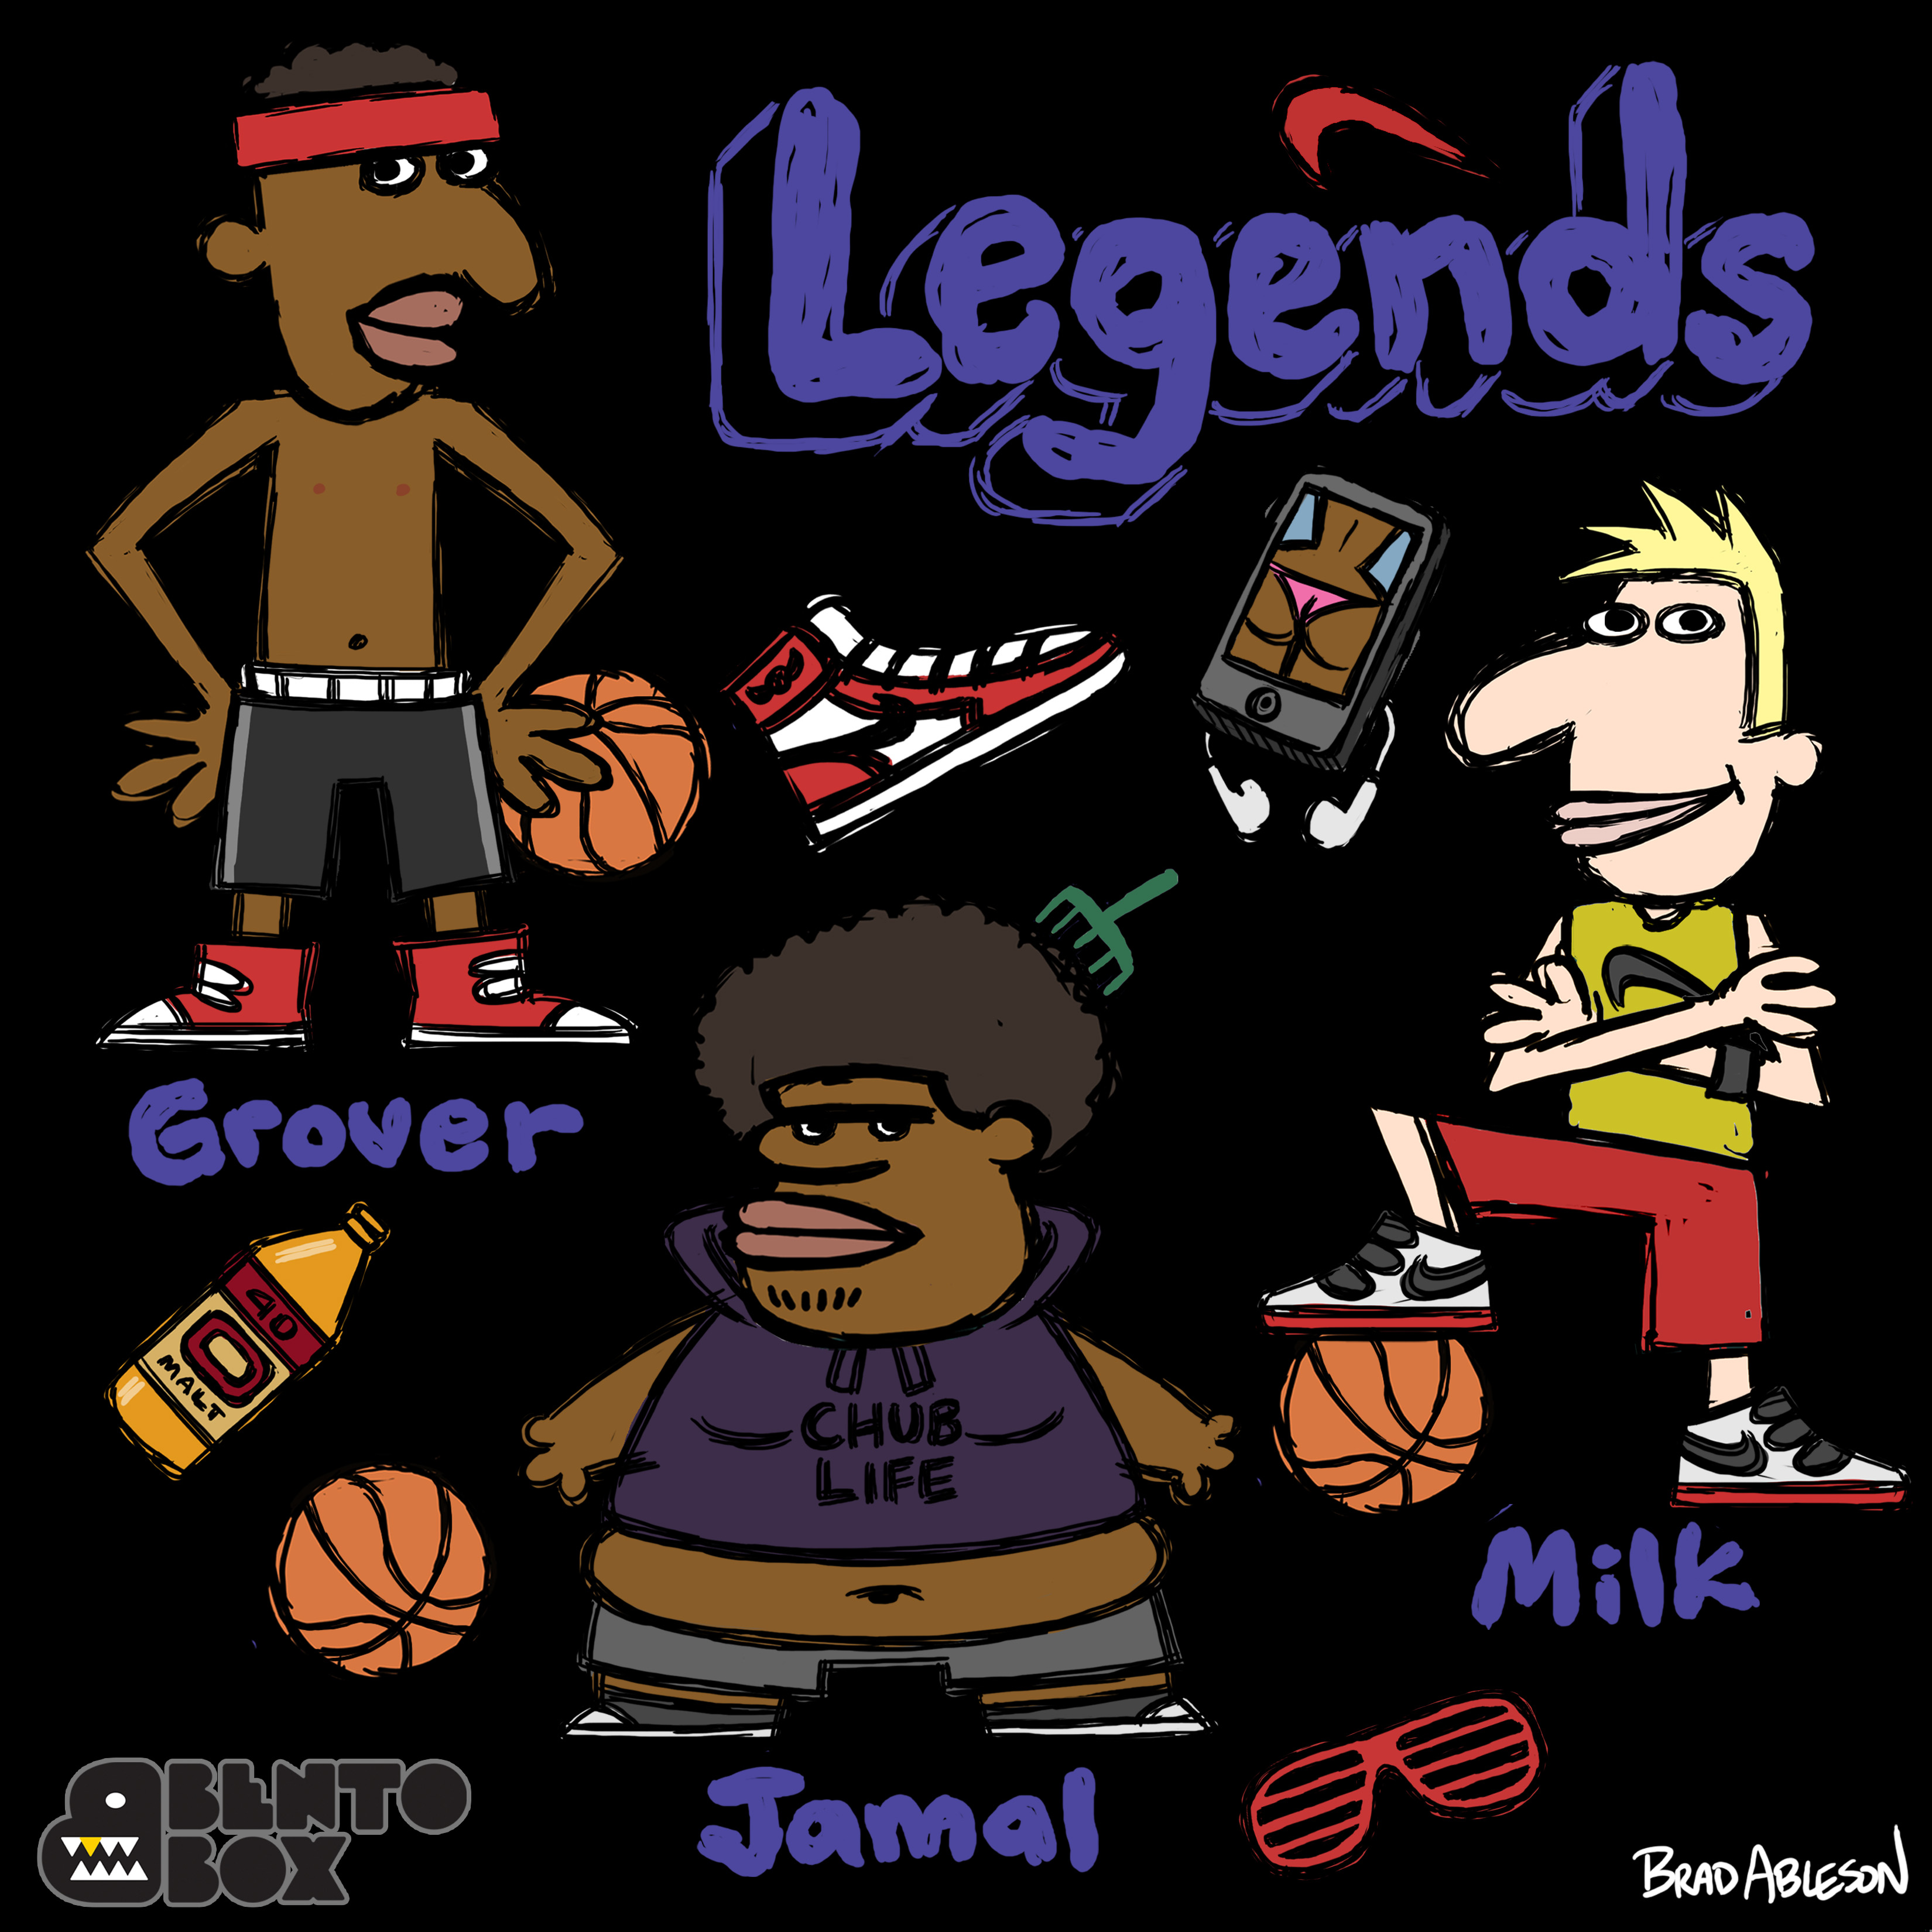 Legends-characters